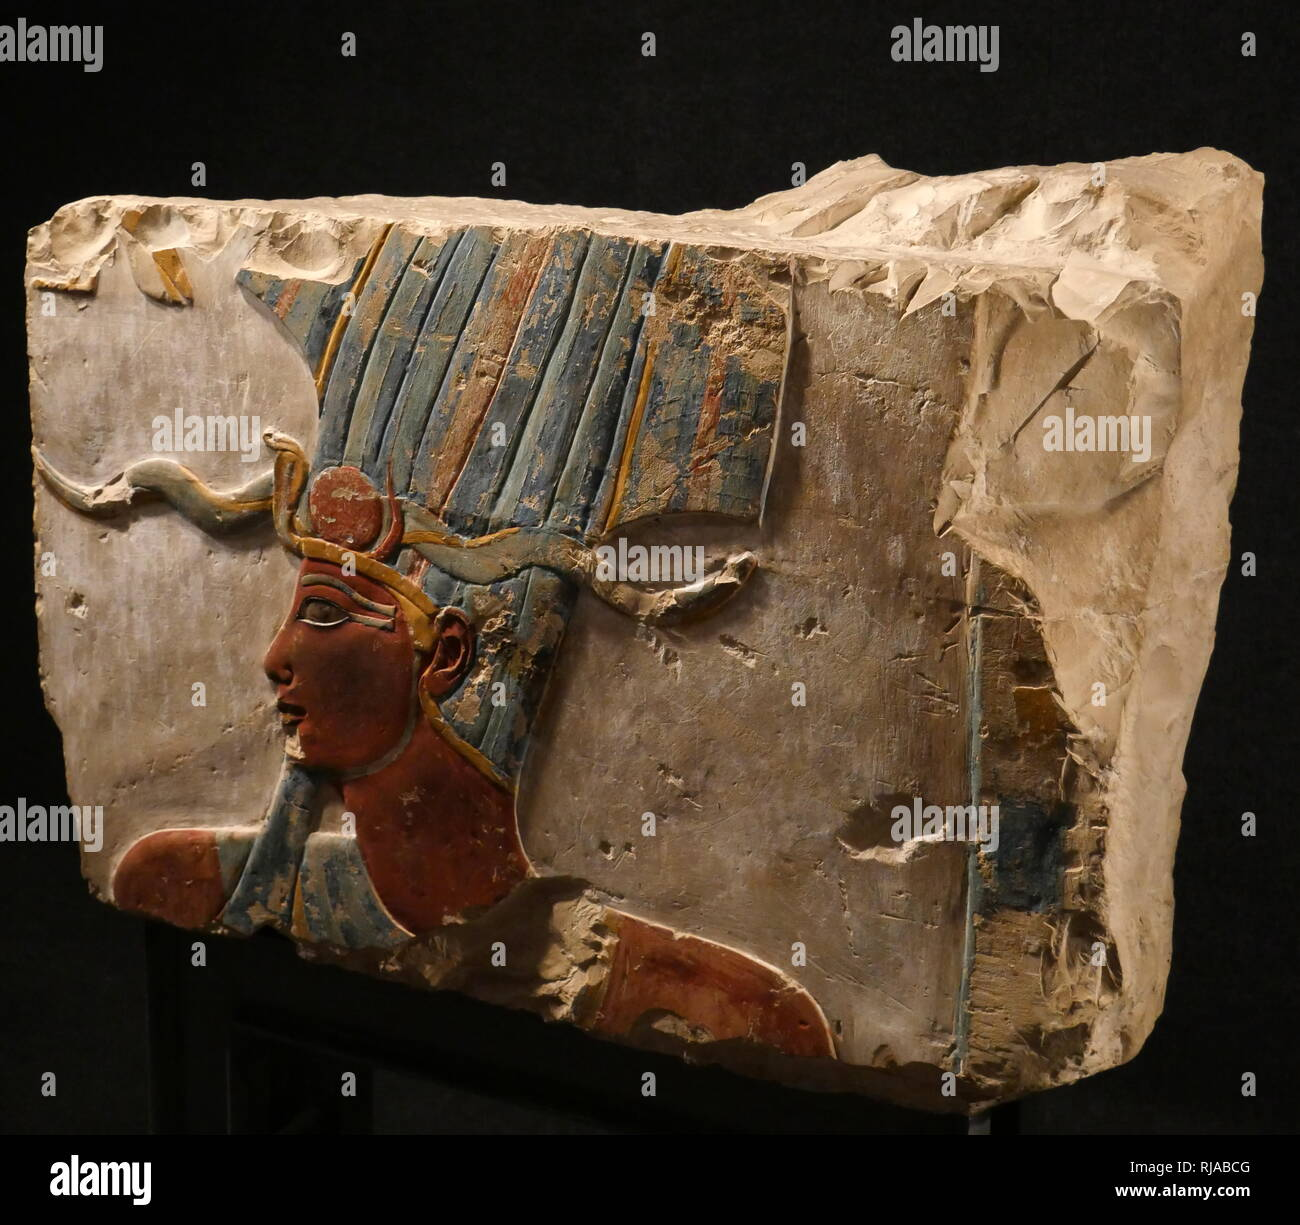 painted limestone relief depicting Amun-Min; New Kingdom; Deir el Bahri 1490-1436 BC. Amun was a major ancient Egyptian deity who appears as a member of the Hermopolitan Ogdoad. Min was an ancient Egyptian god whose cult originated in the Predynastic period - Stock Image